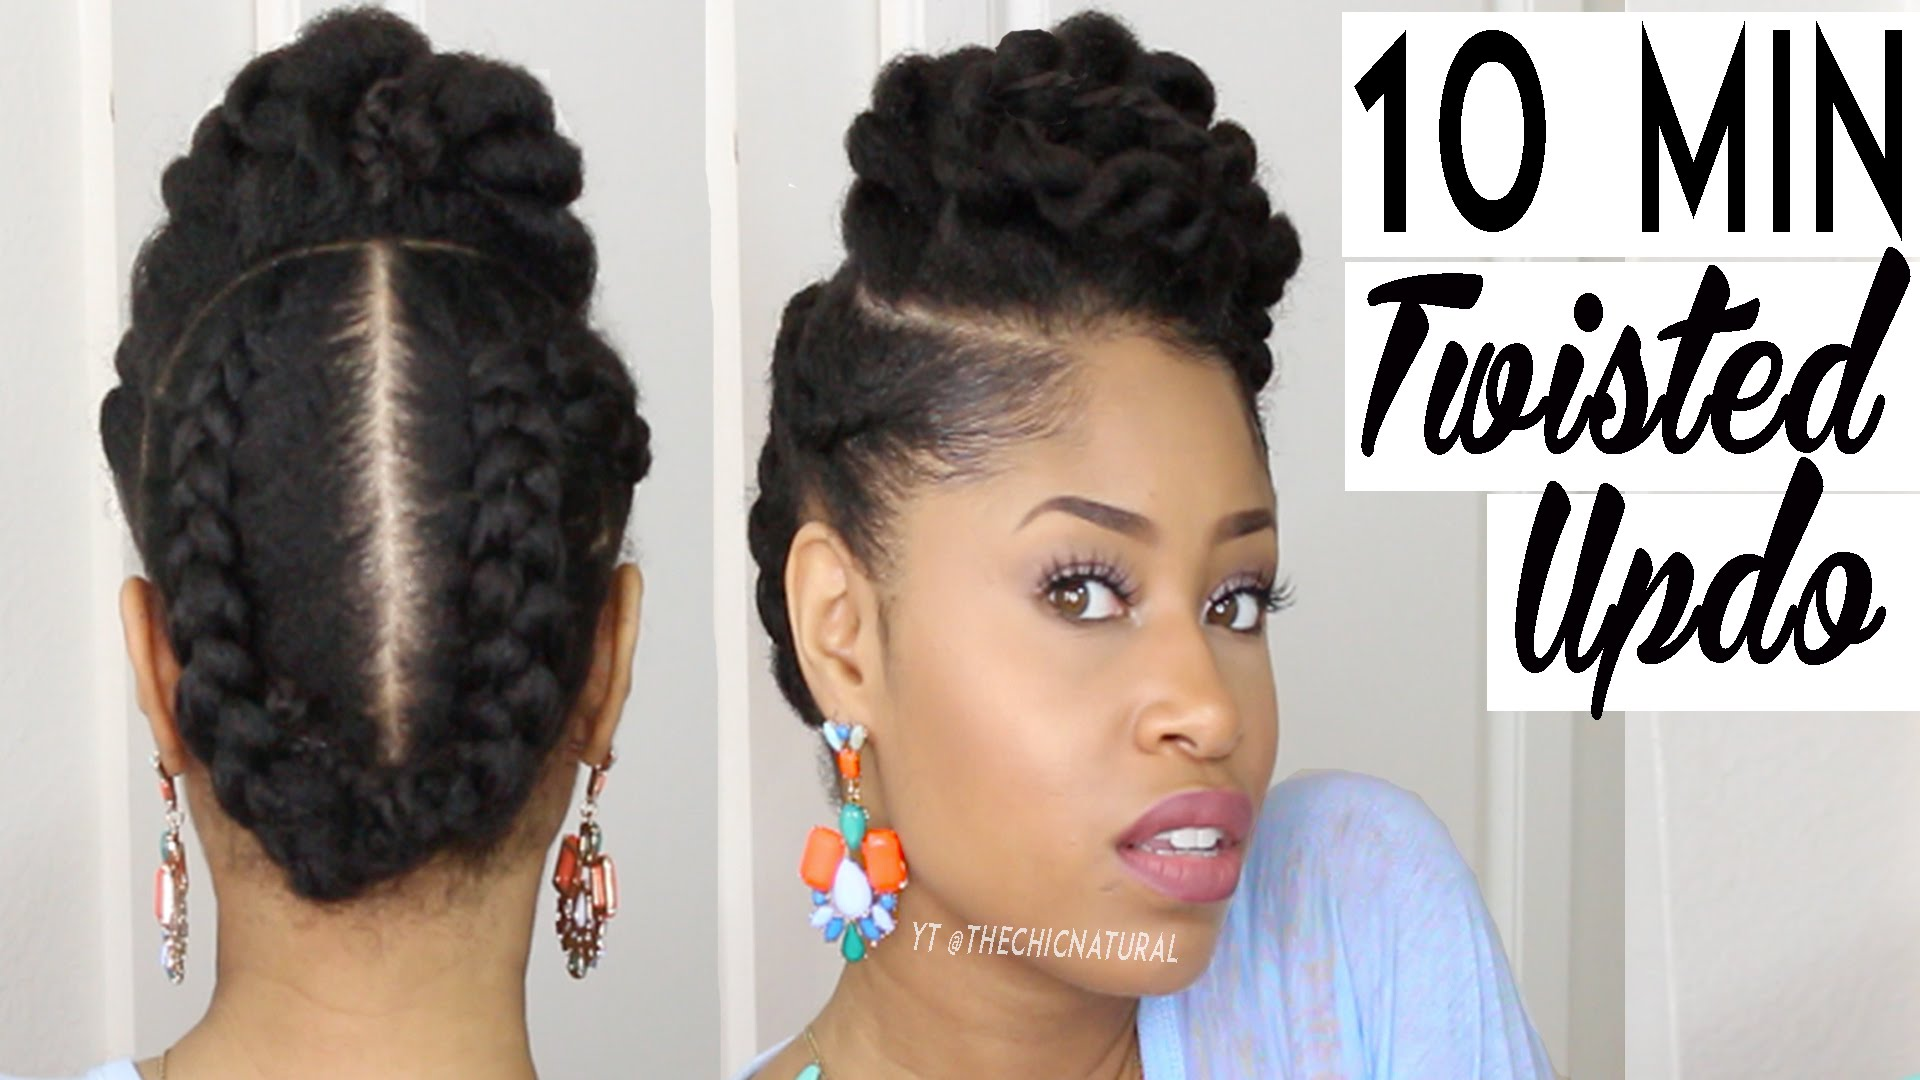 Natural Hair Style: Twisted Natural Hair Protective Updo In 10 Minutes Or Less